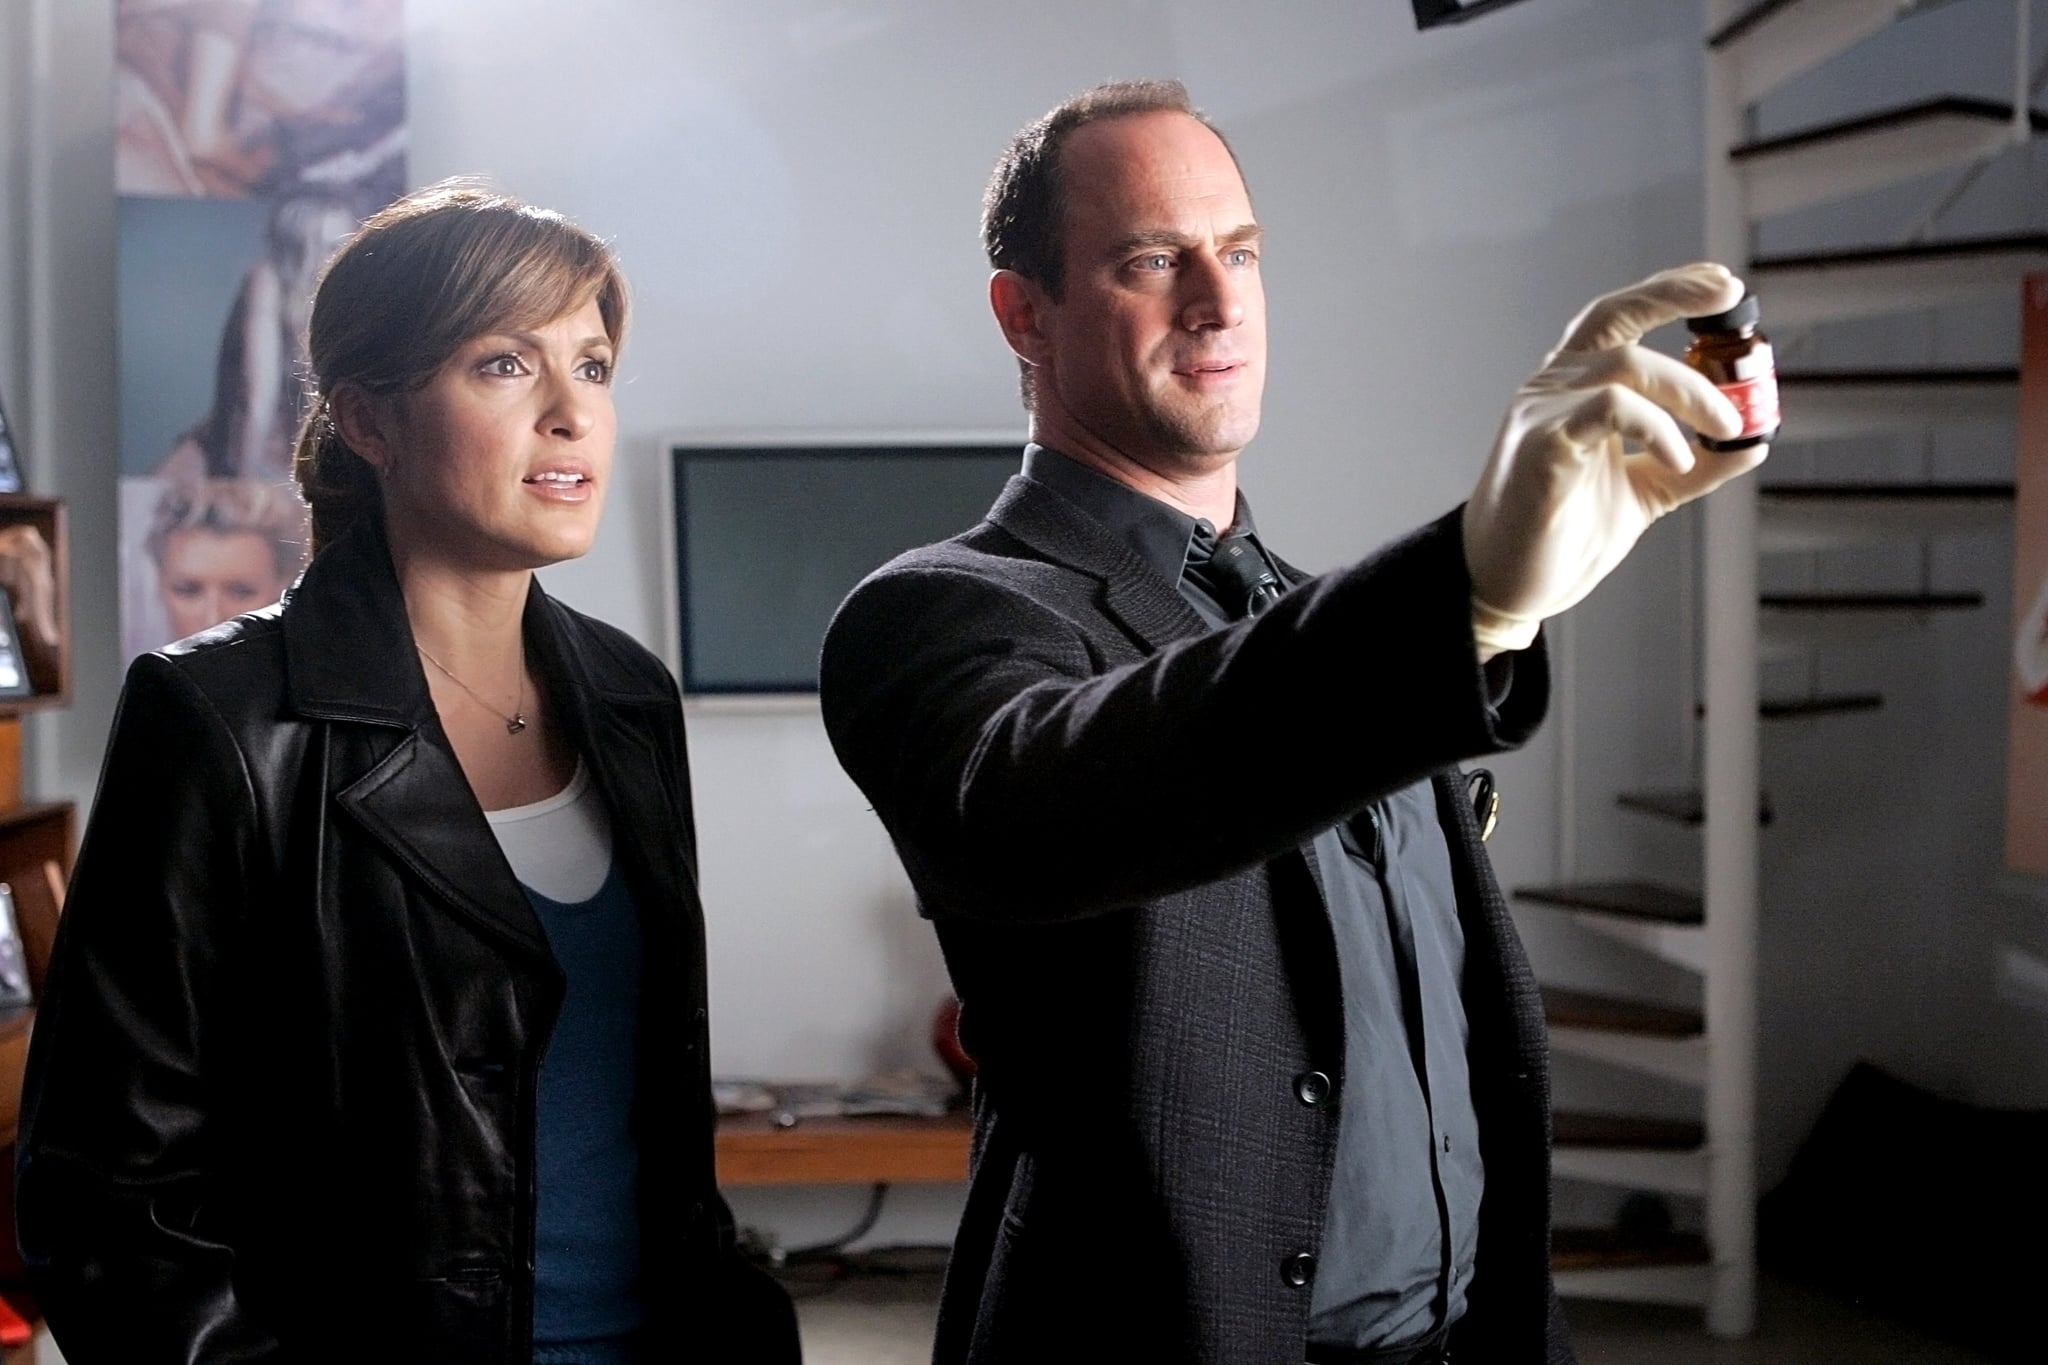 LAW & ORDER: SPECIAL VICTIMS UNIT: Mariska Hargitay, Christopher Meloni, (Season 8, November 28, 2006), 1999-,. Photo: Virginia Sherwood  NBC / Courtesy Everett Collection